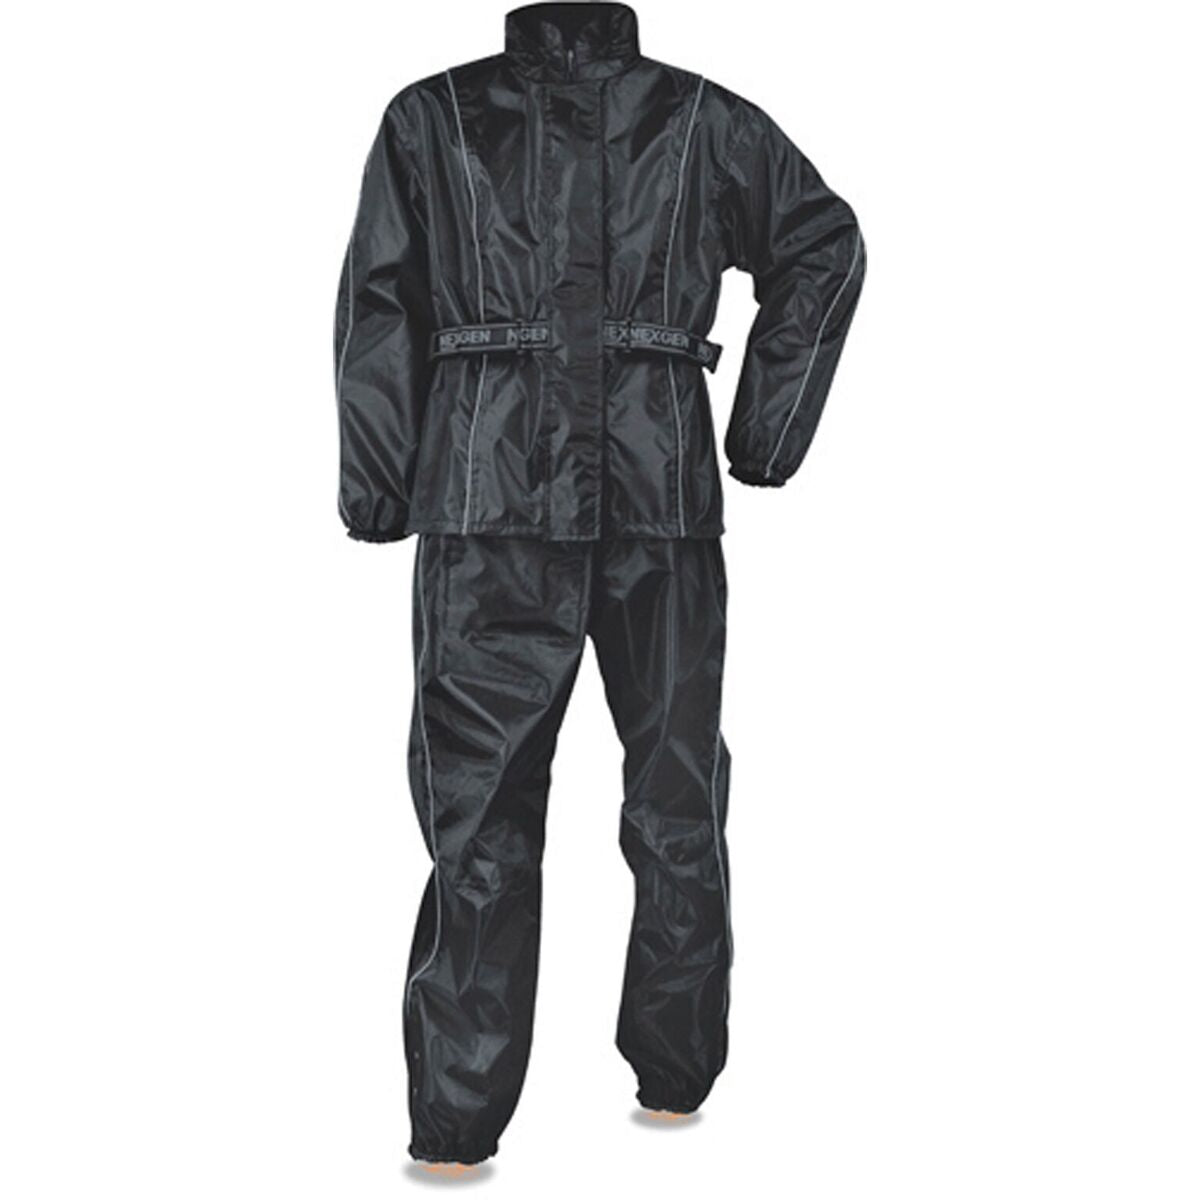 Men's Black Rain Suit Oxford Nylon Lightweight & Water Resistant